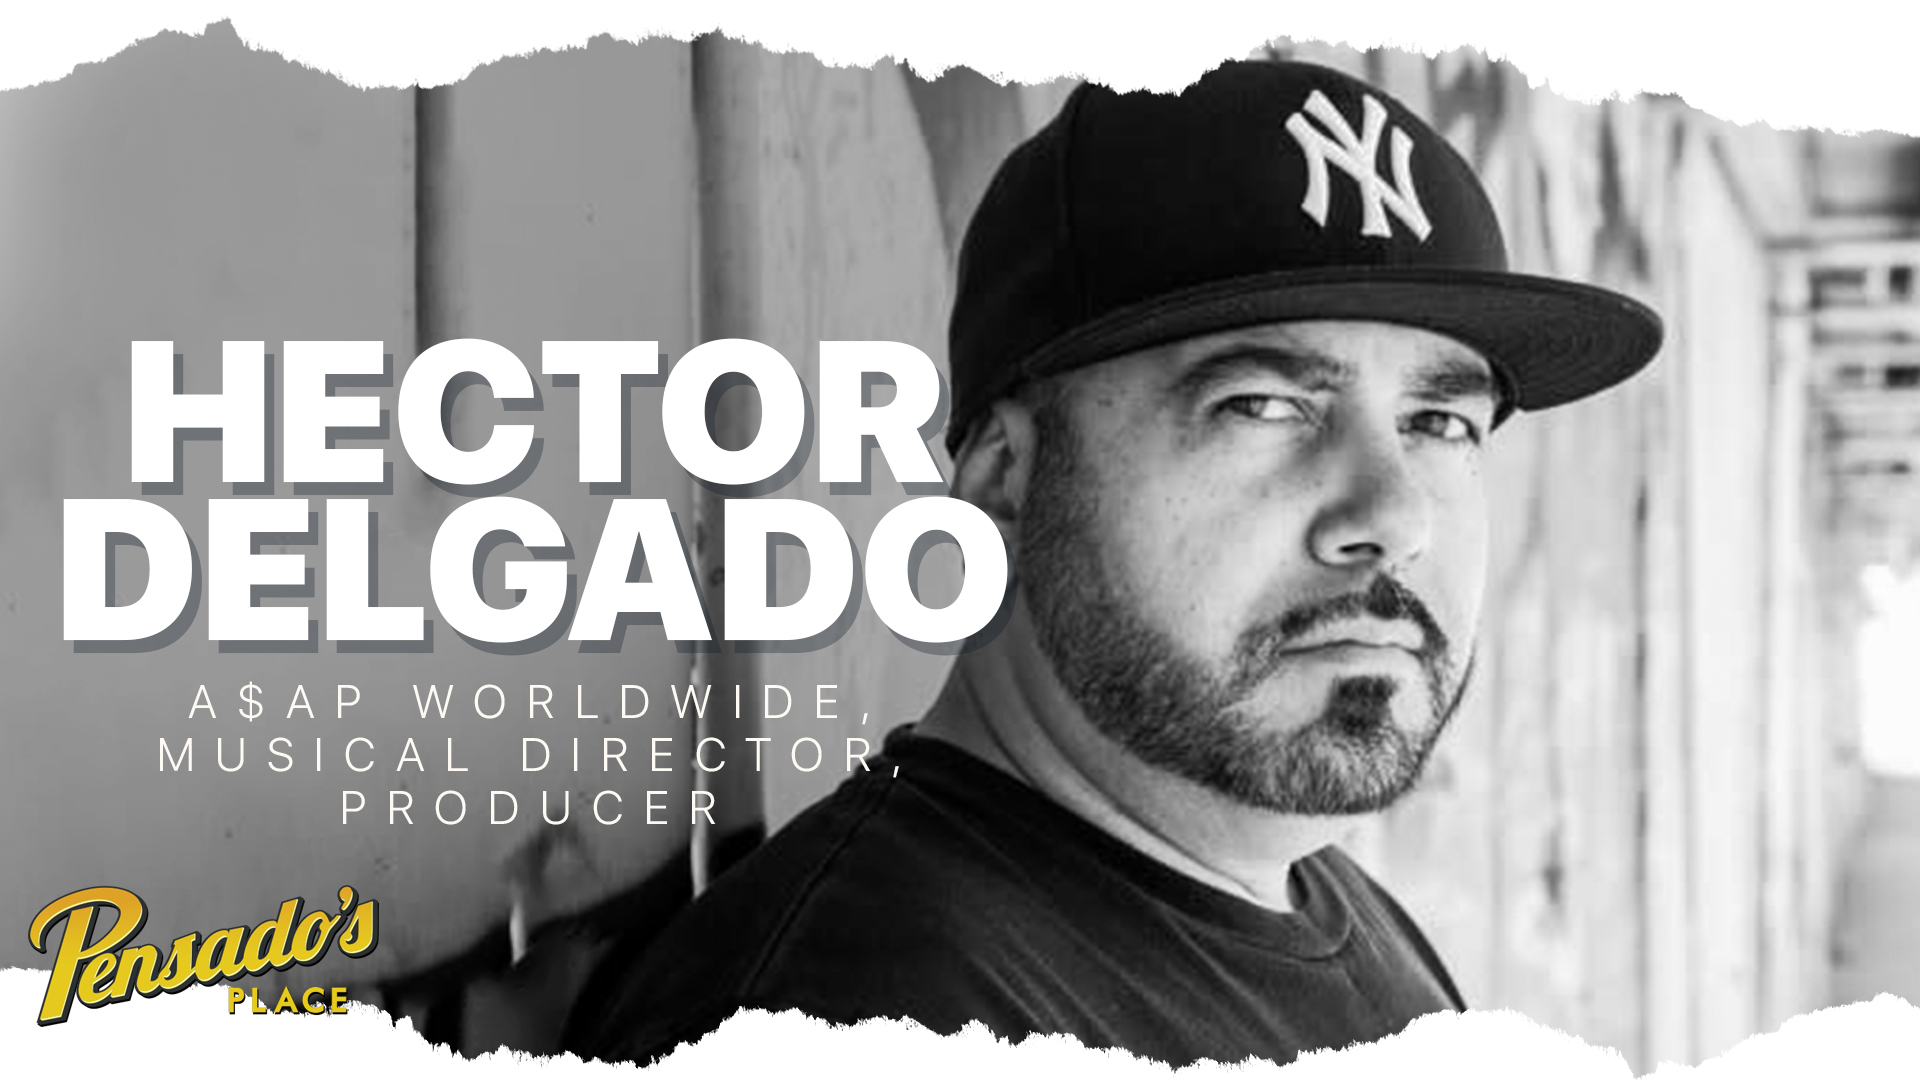 A$AP Worldwide Musical Director / Producer, Hector Delgado